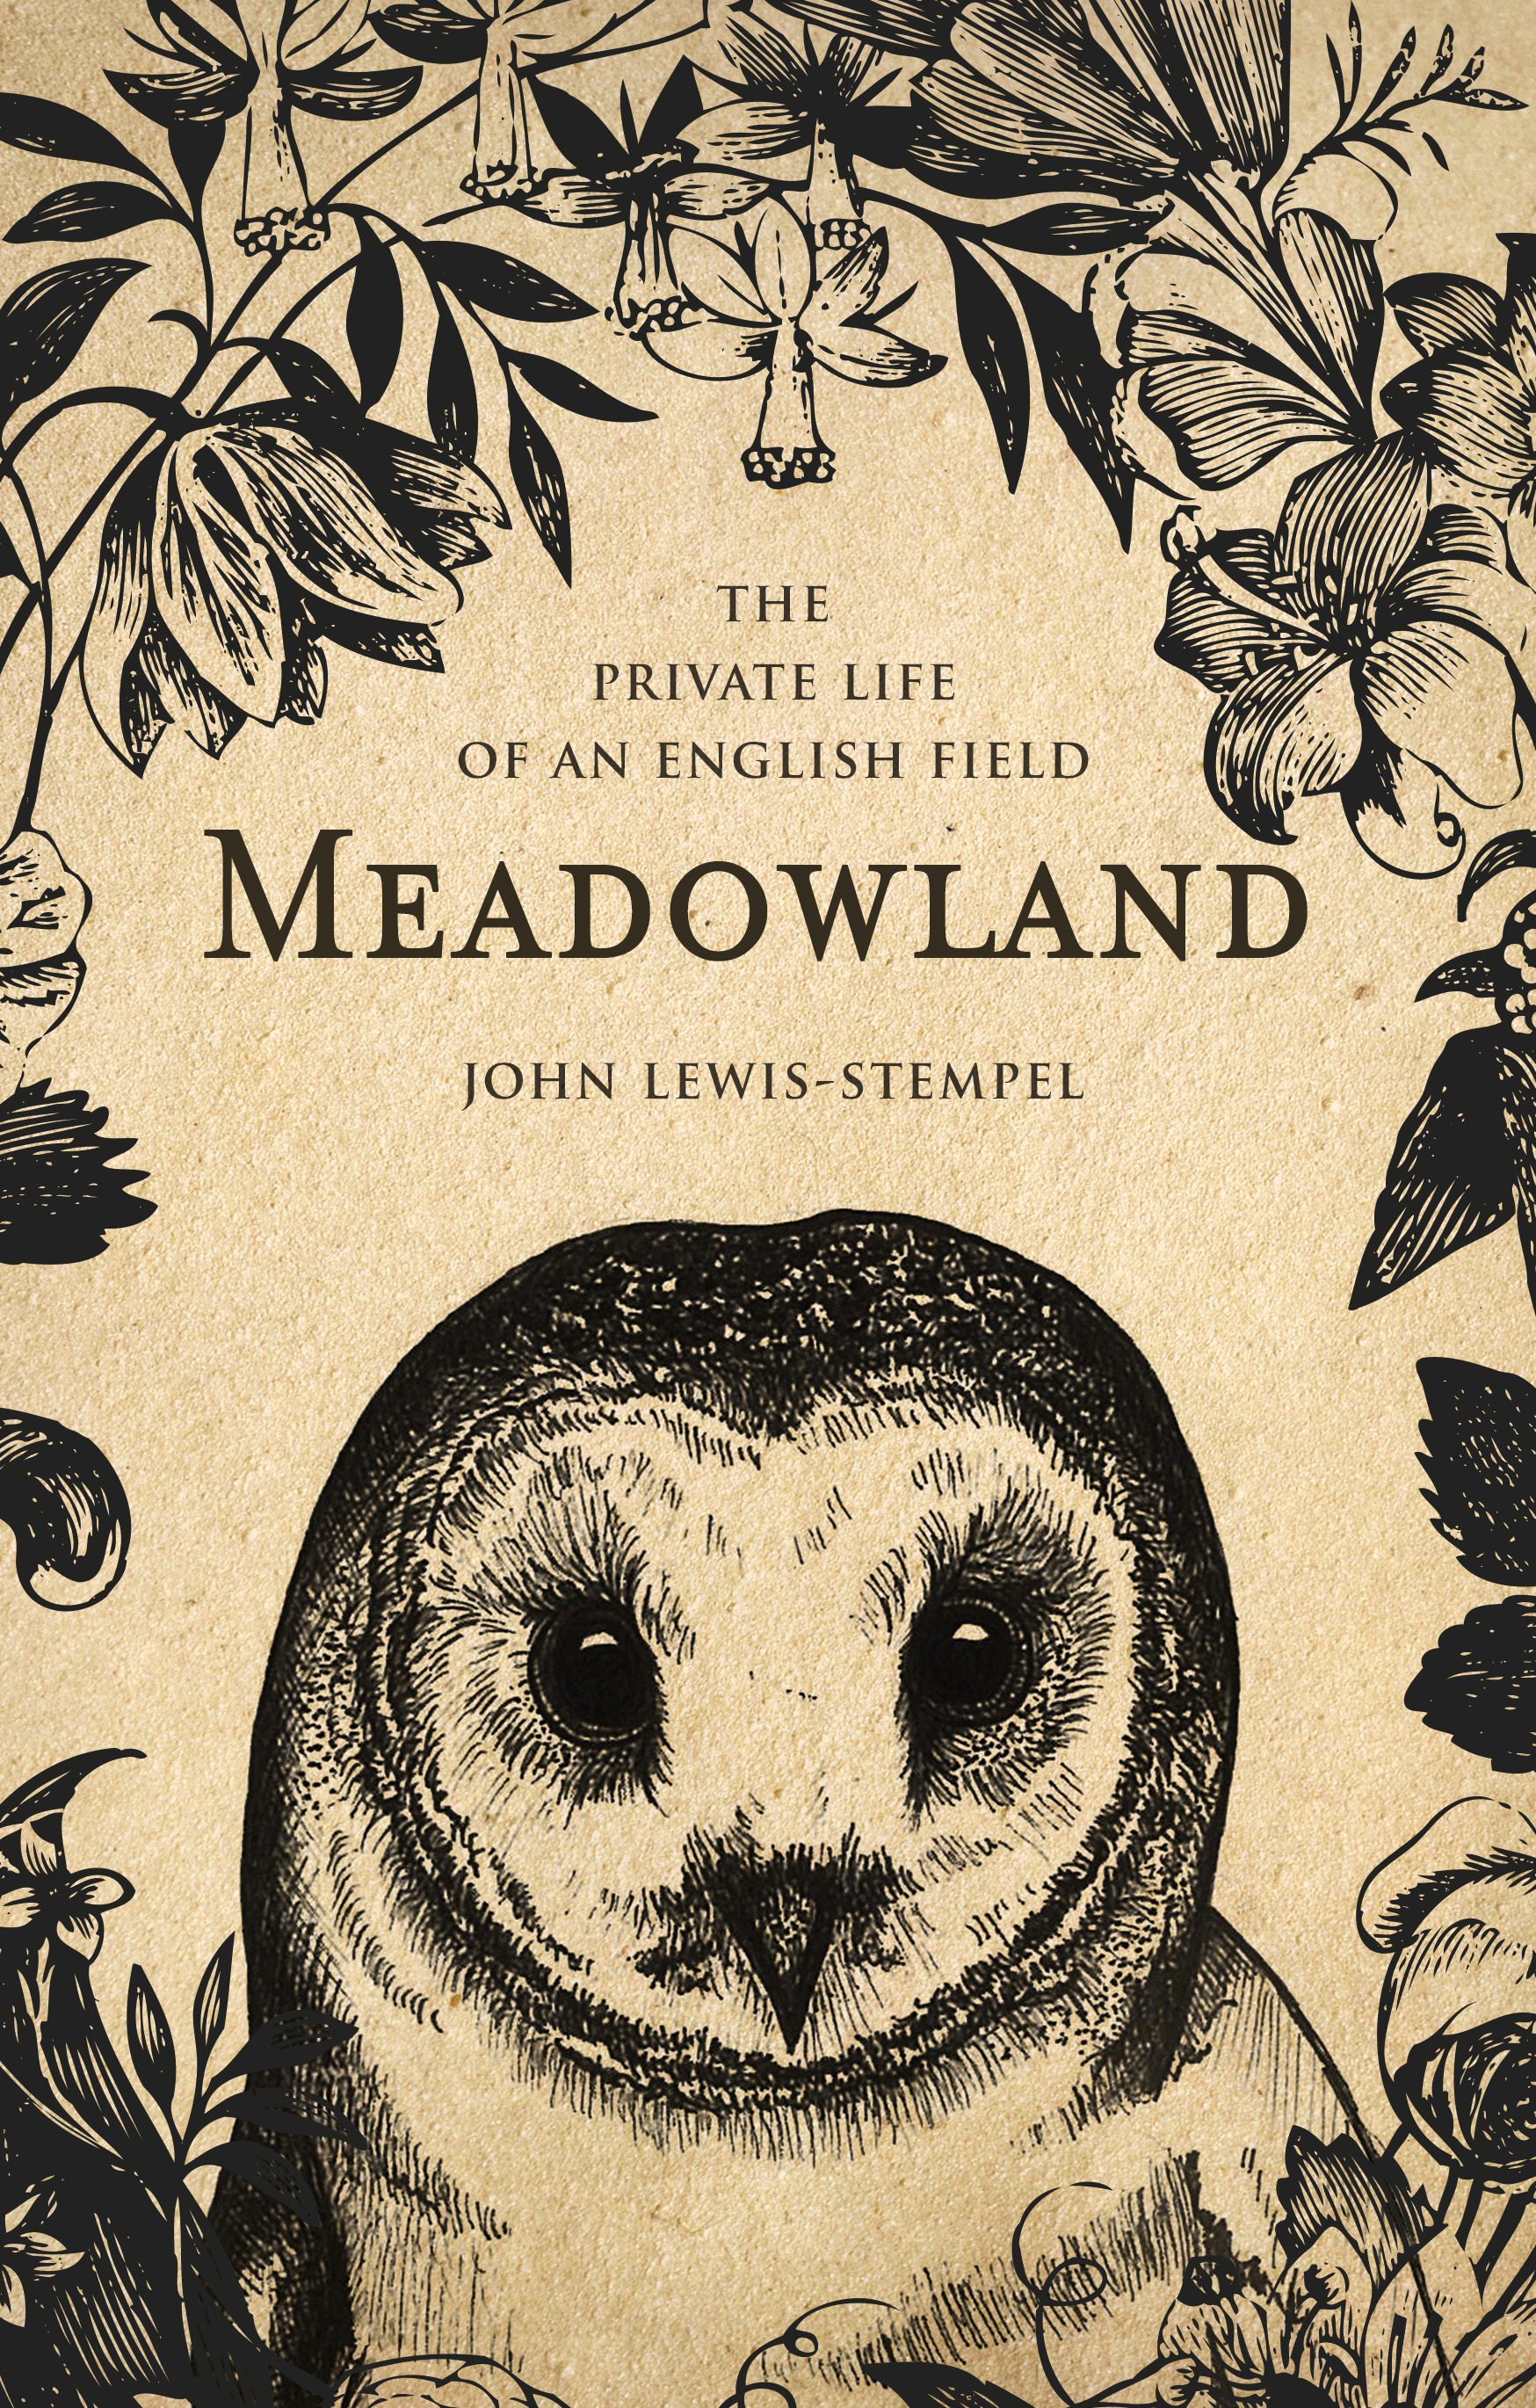 Meadowland the private life of an English field